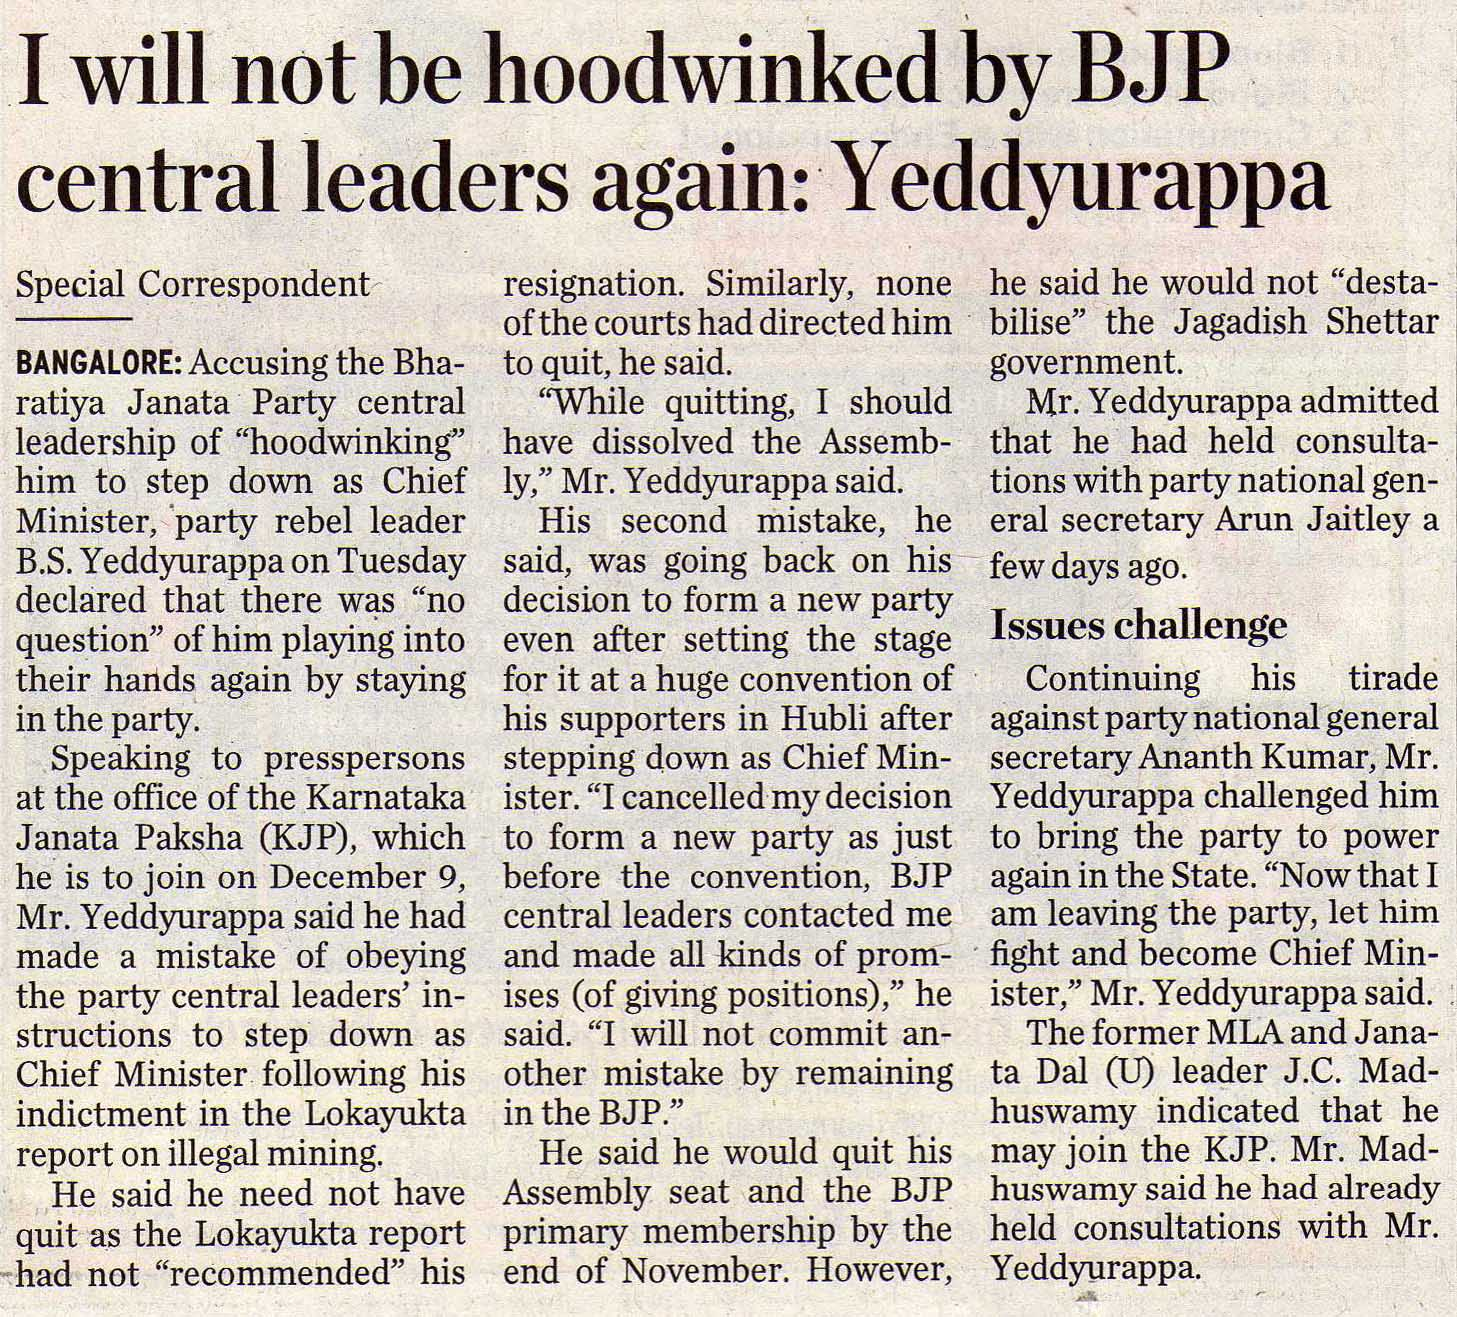 I will not be hoodwinked by BJP central leaders again: Yeddyurappa